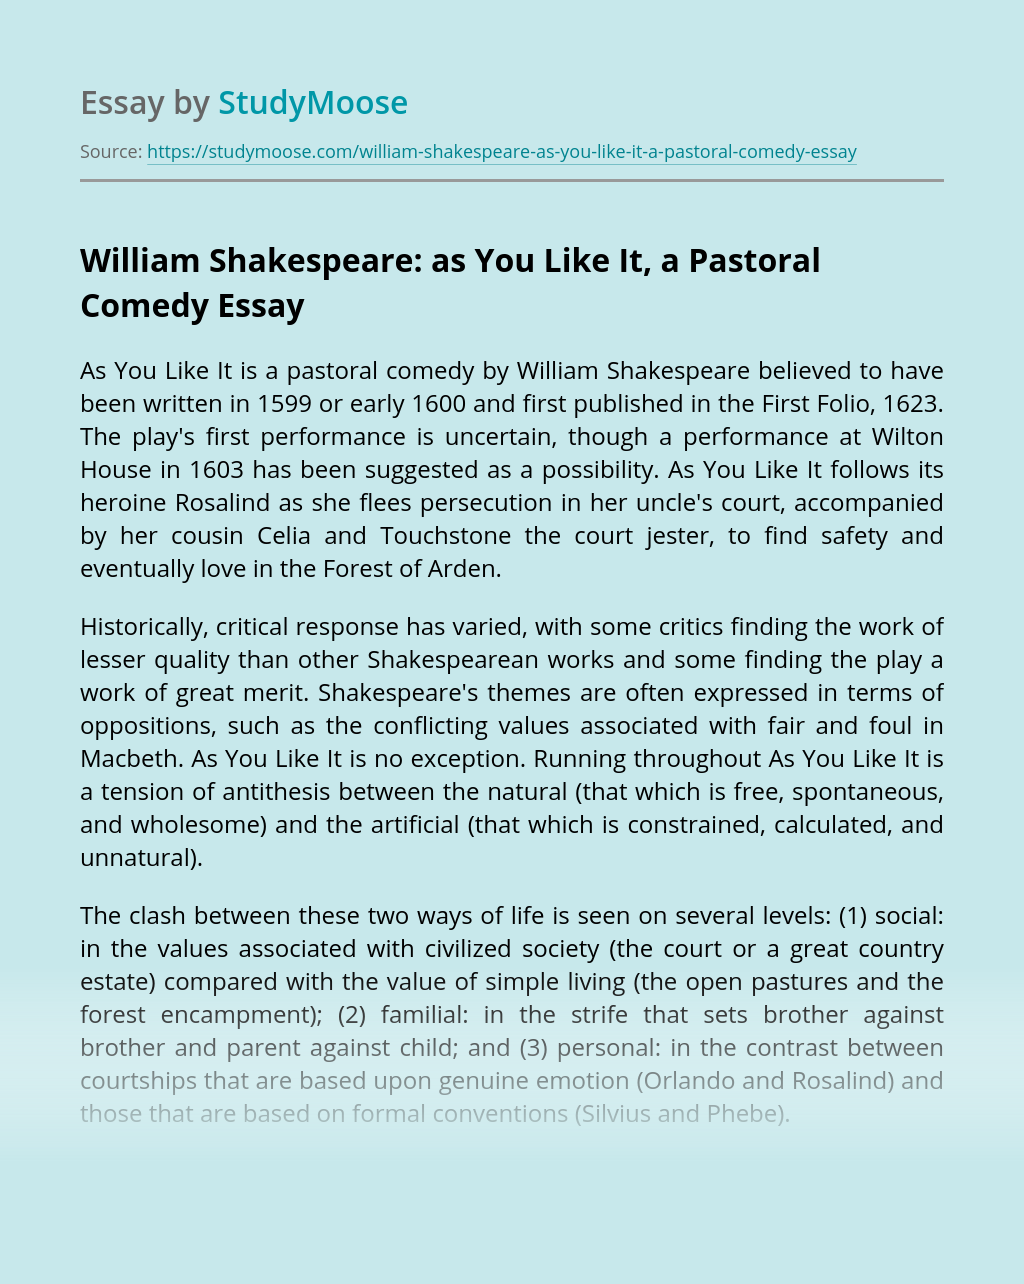 William Shakespeare: as You Like It, a Pastoral Comedy